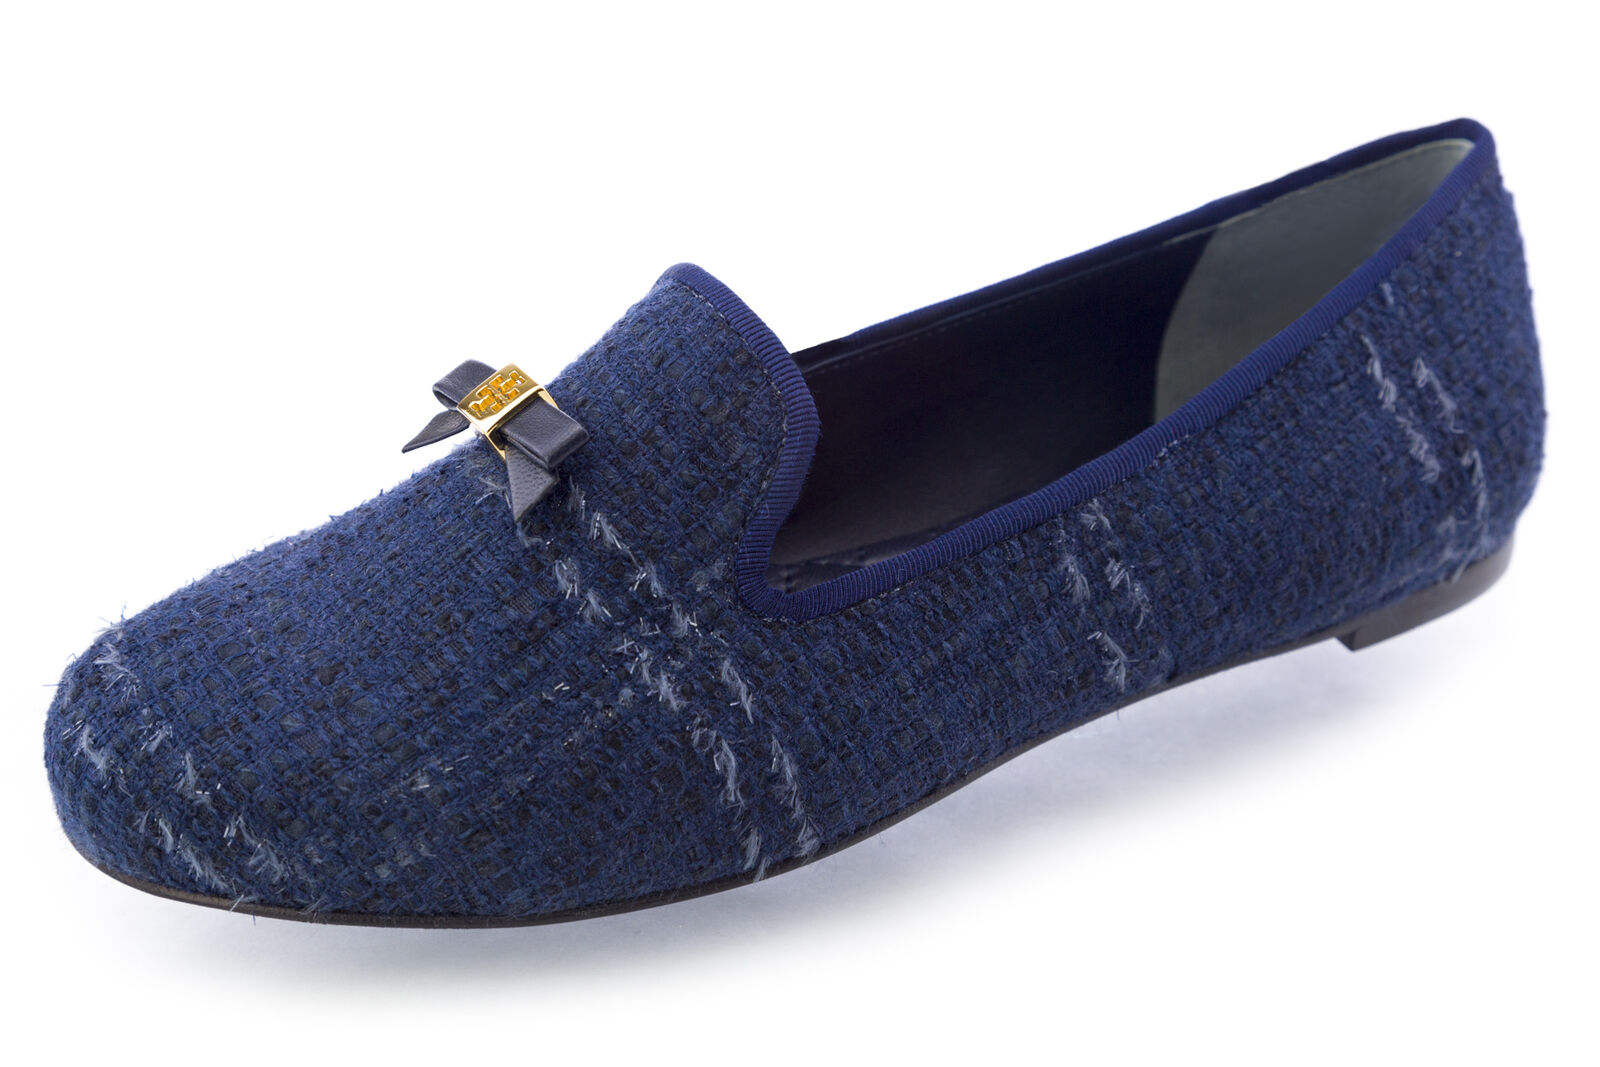 TORY BURCH Chandra Glazed Tweed Loafers shoes Navy Combo